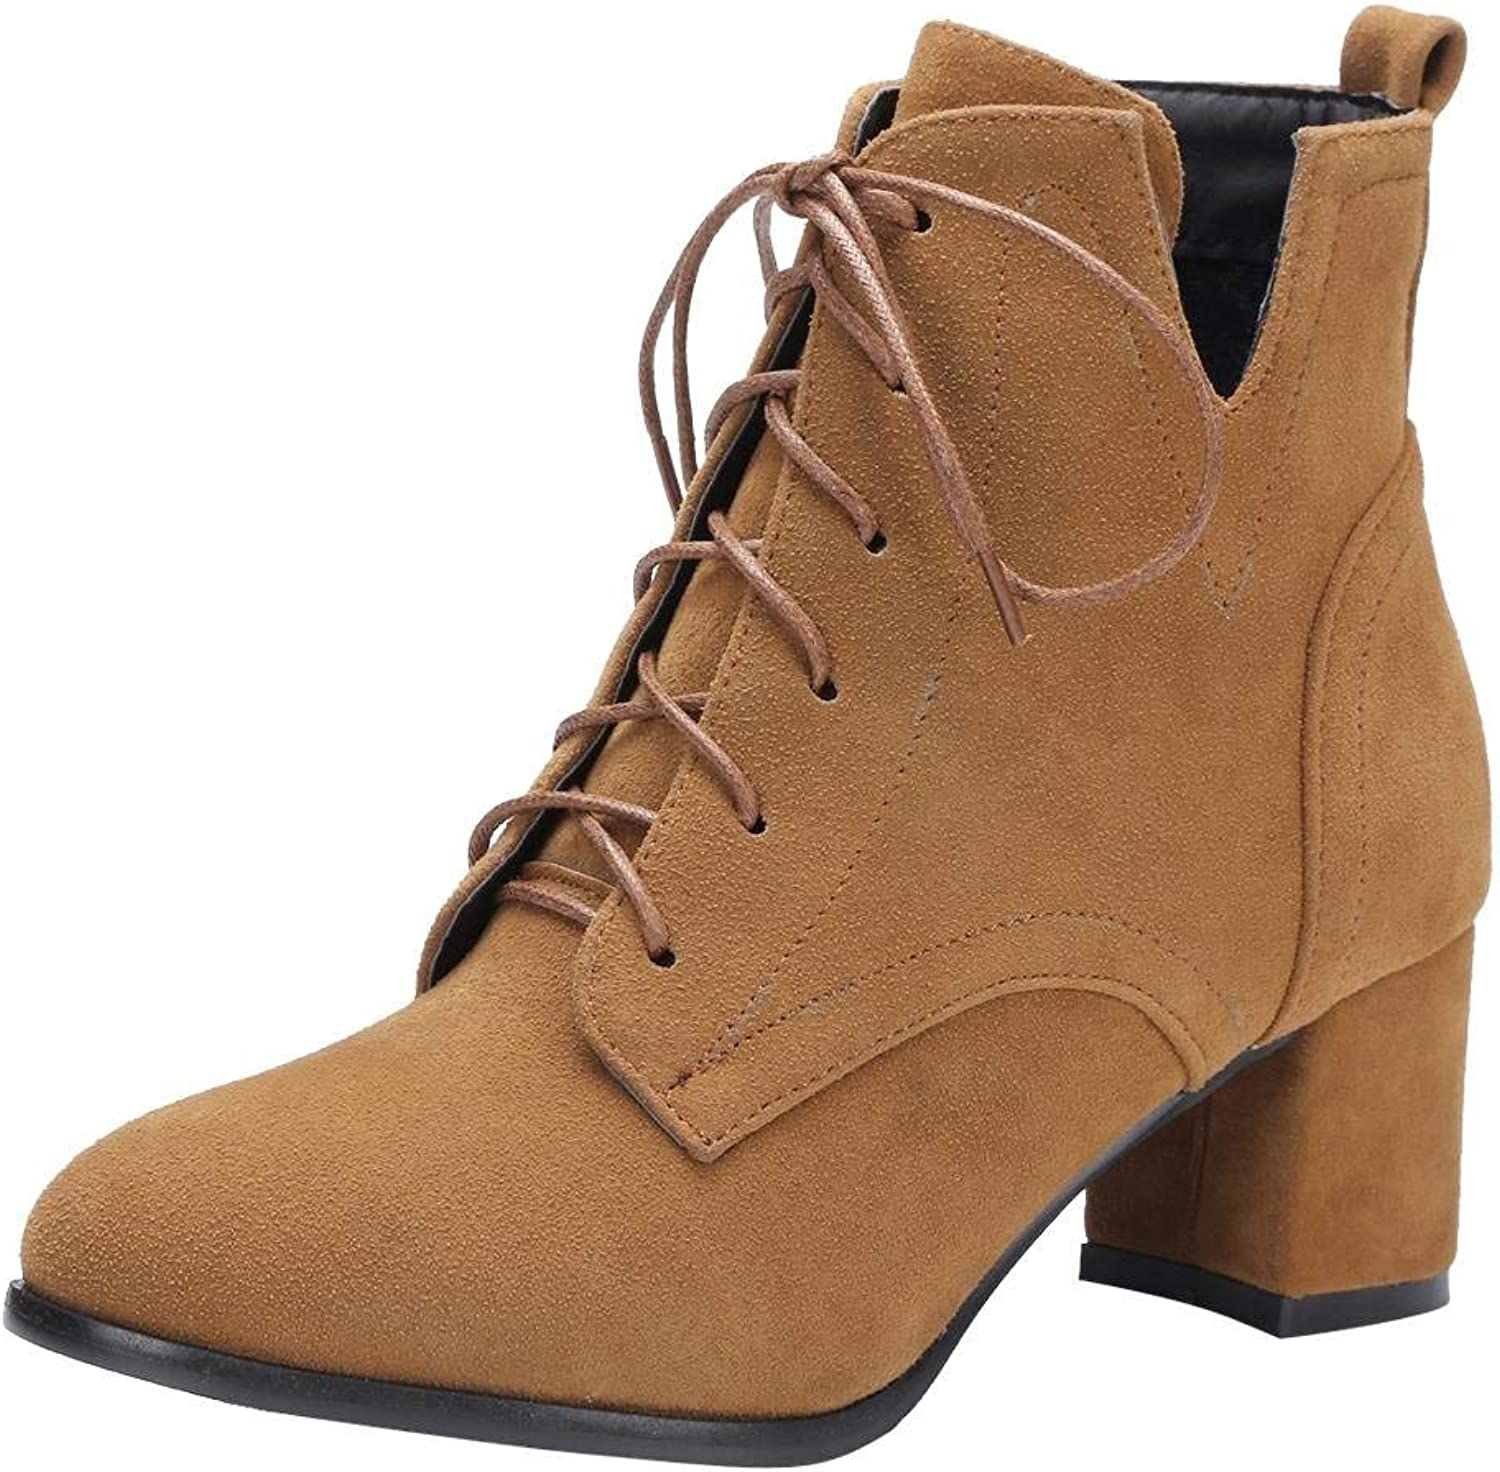 Gcanwea Women's Western Lace Up Chunky High Heel Ankle Boots Breathable Fashion Pointed Toe Warm Winter Height Increase Comfortable Suede Dark Camel 4.5 M US Ankle Boots